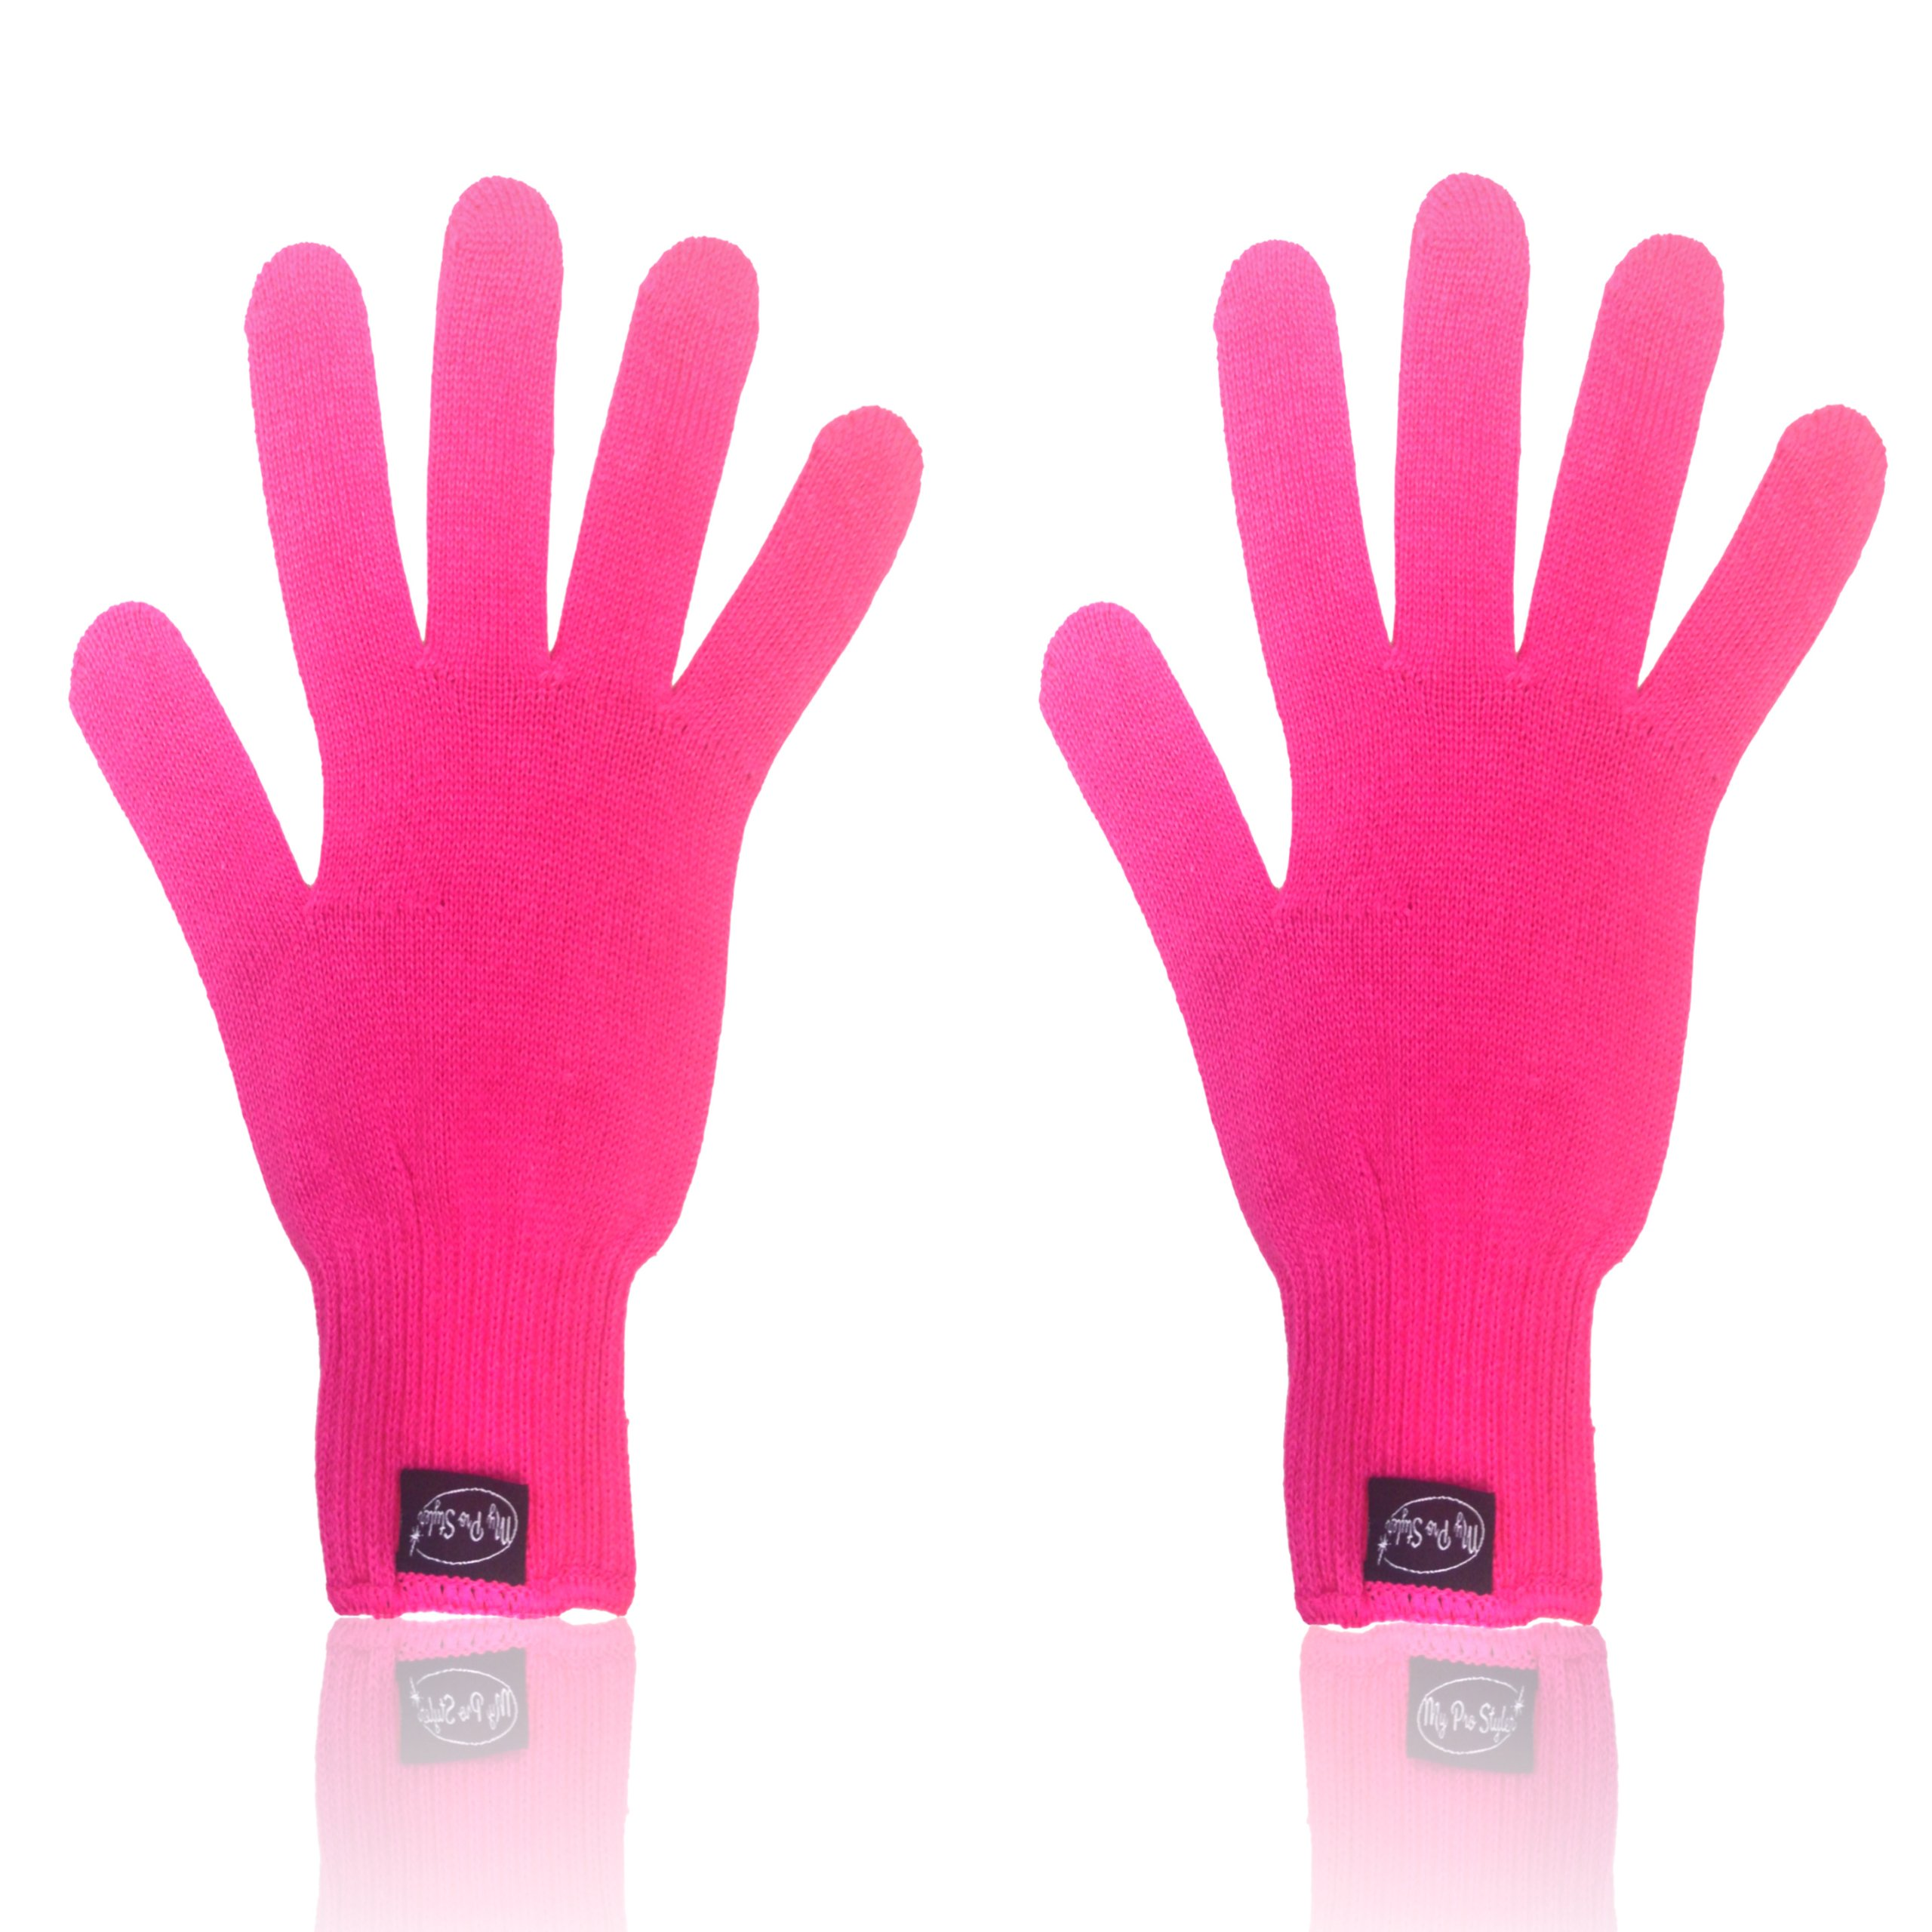 2 X PINK Heat Resistant Gloves for Flat/Curling Irons & Other Hot Hair Styling Tools By MyProStyler